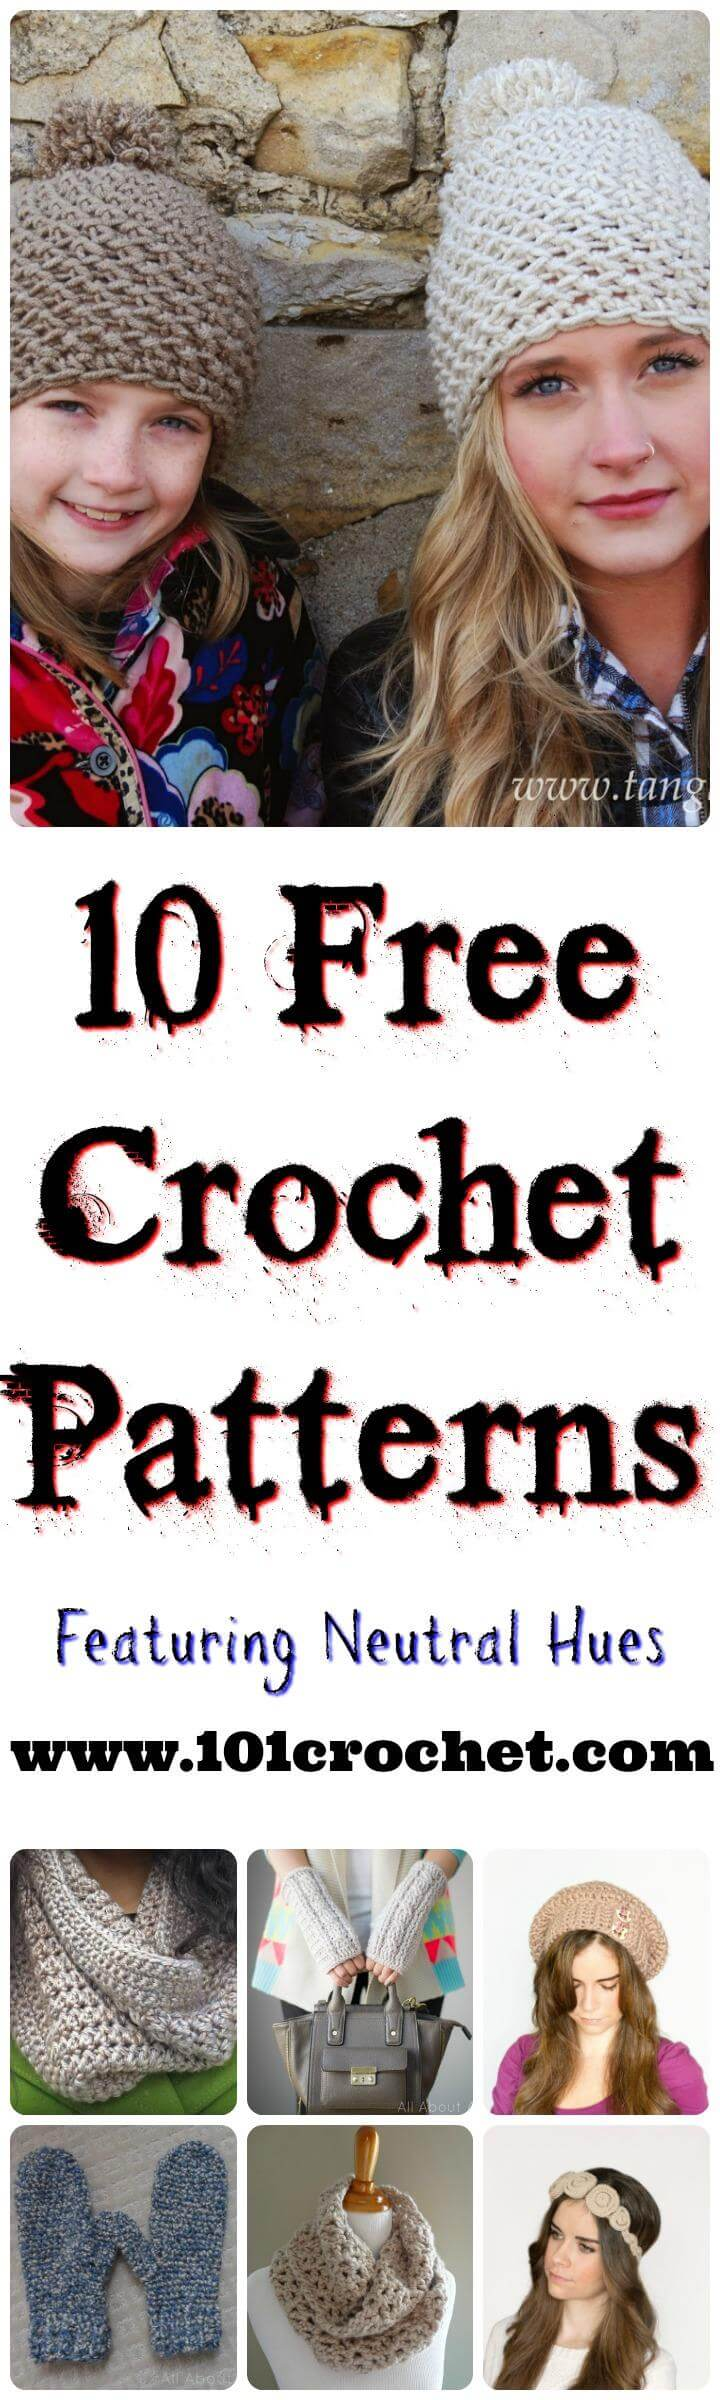 Facebook Crochet Patterns : 10 Free Crochet Patterns Featuring Neutral Hues 101 Crochet